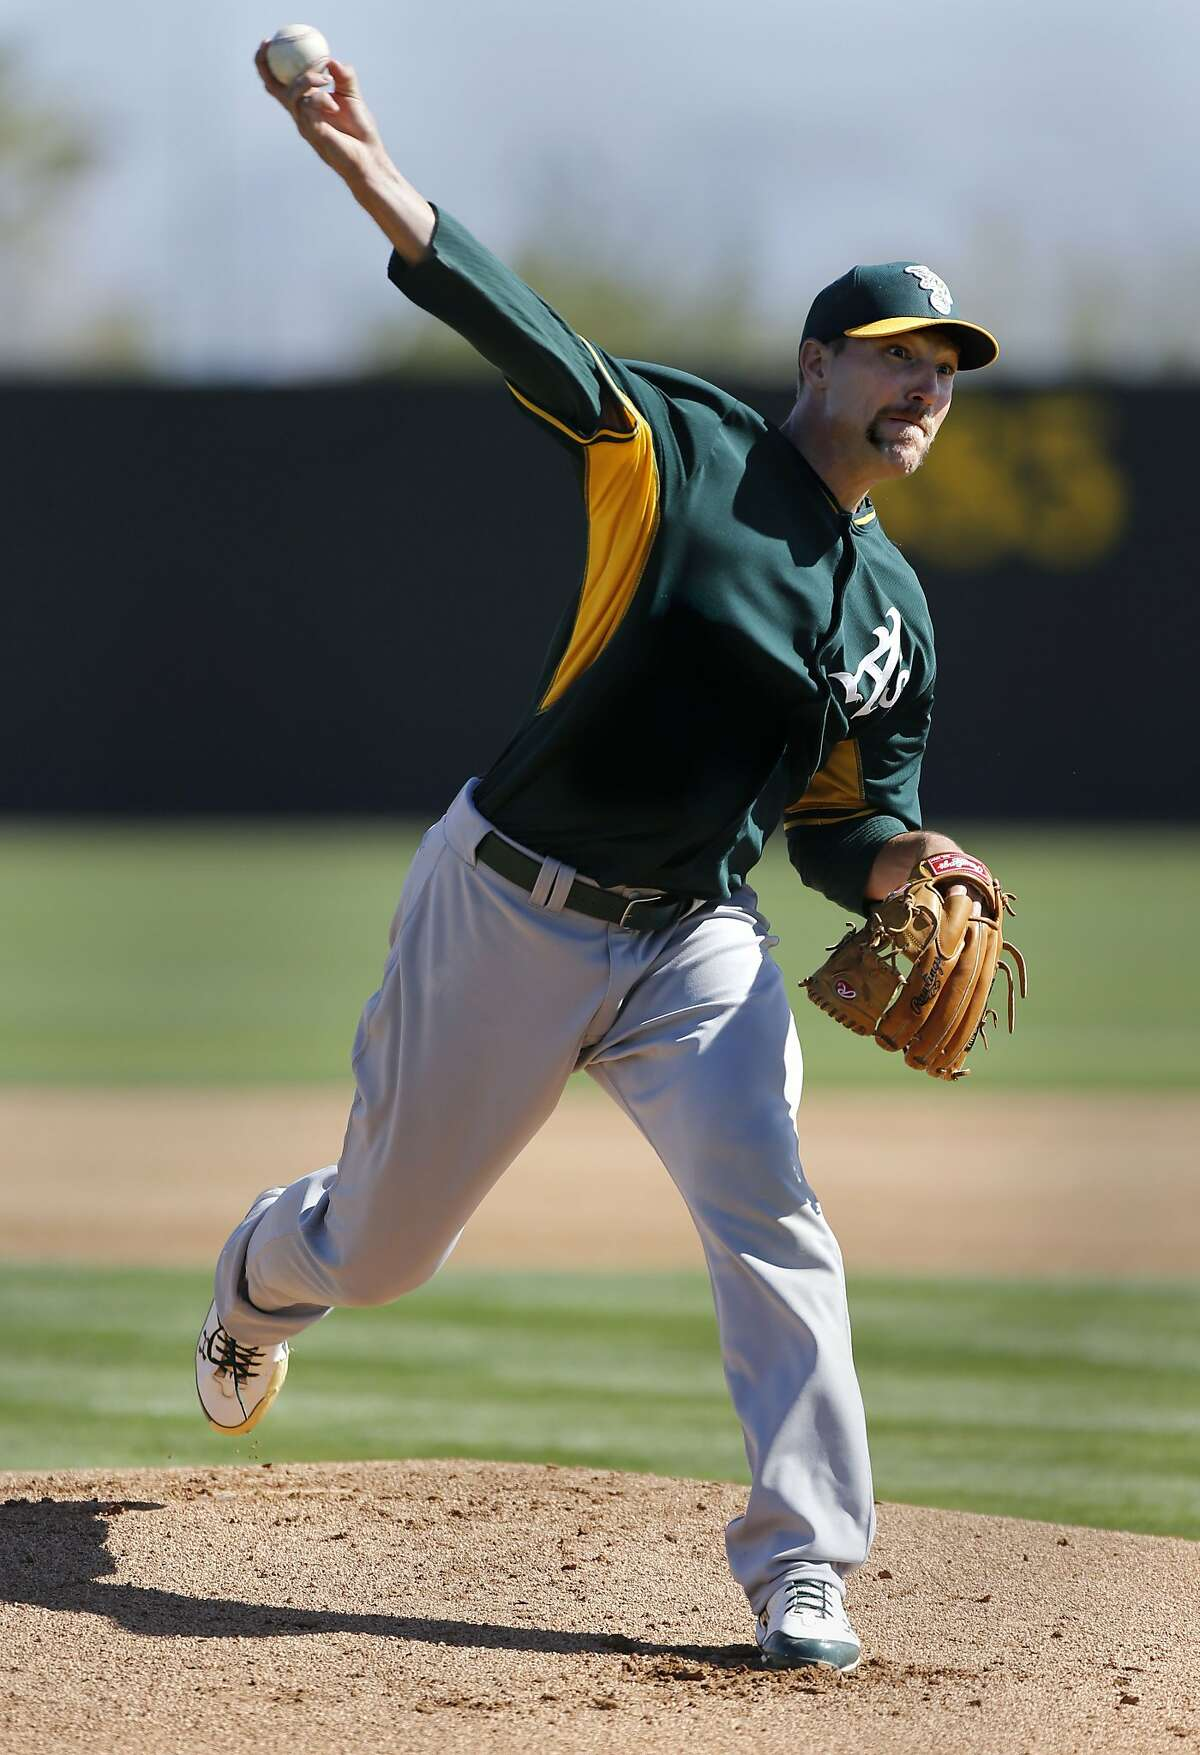 A's pitcher Jim Johnson, (45) throws during batting practice at the Papago Baseball facility in Phoenix, Arizona on Monday Feb. 24, 2014. The Oakland Athletics continue their spring training schedule in the Arizona desert in preparation for the 2014 MBL season.